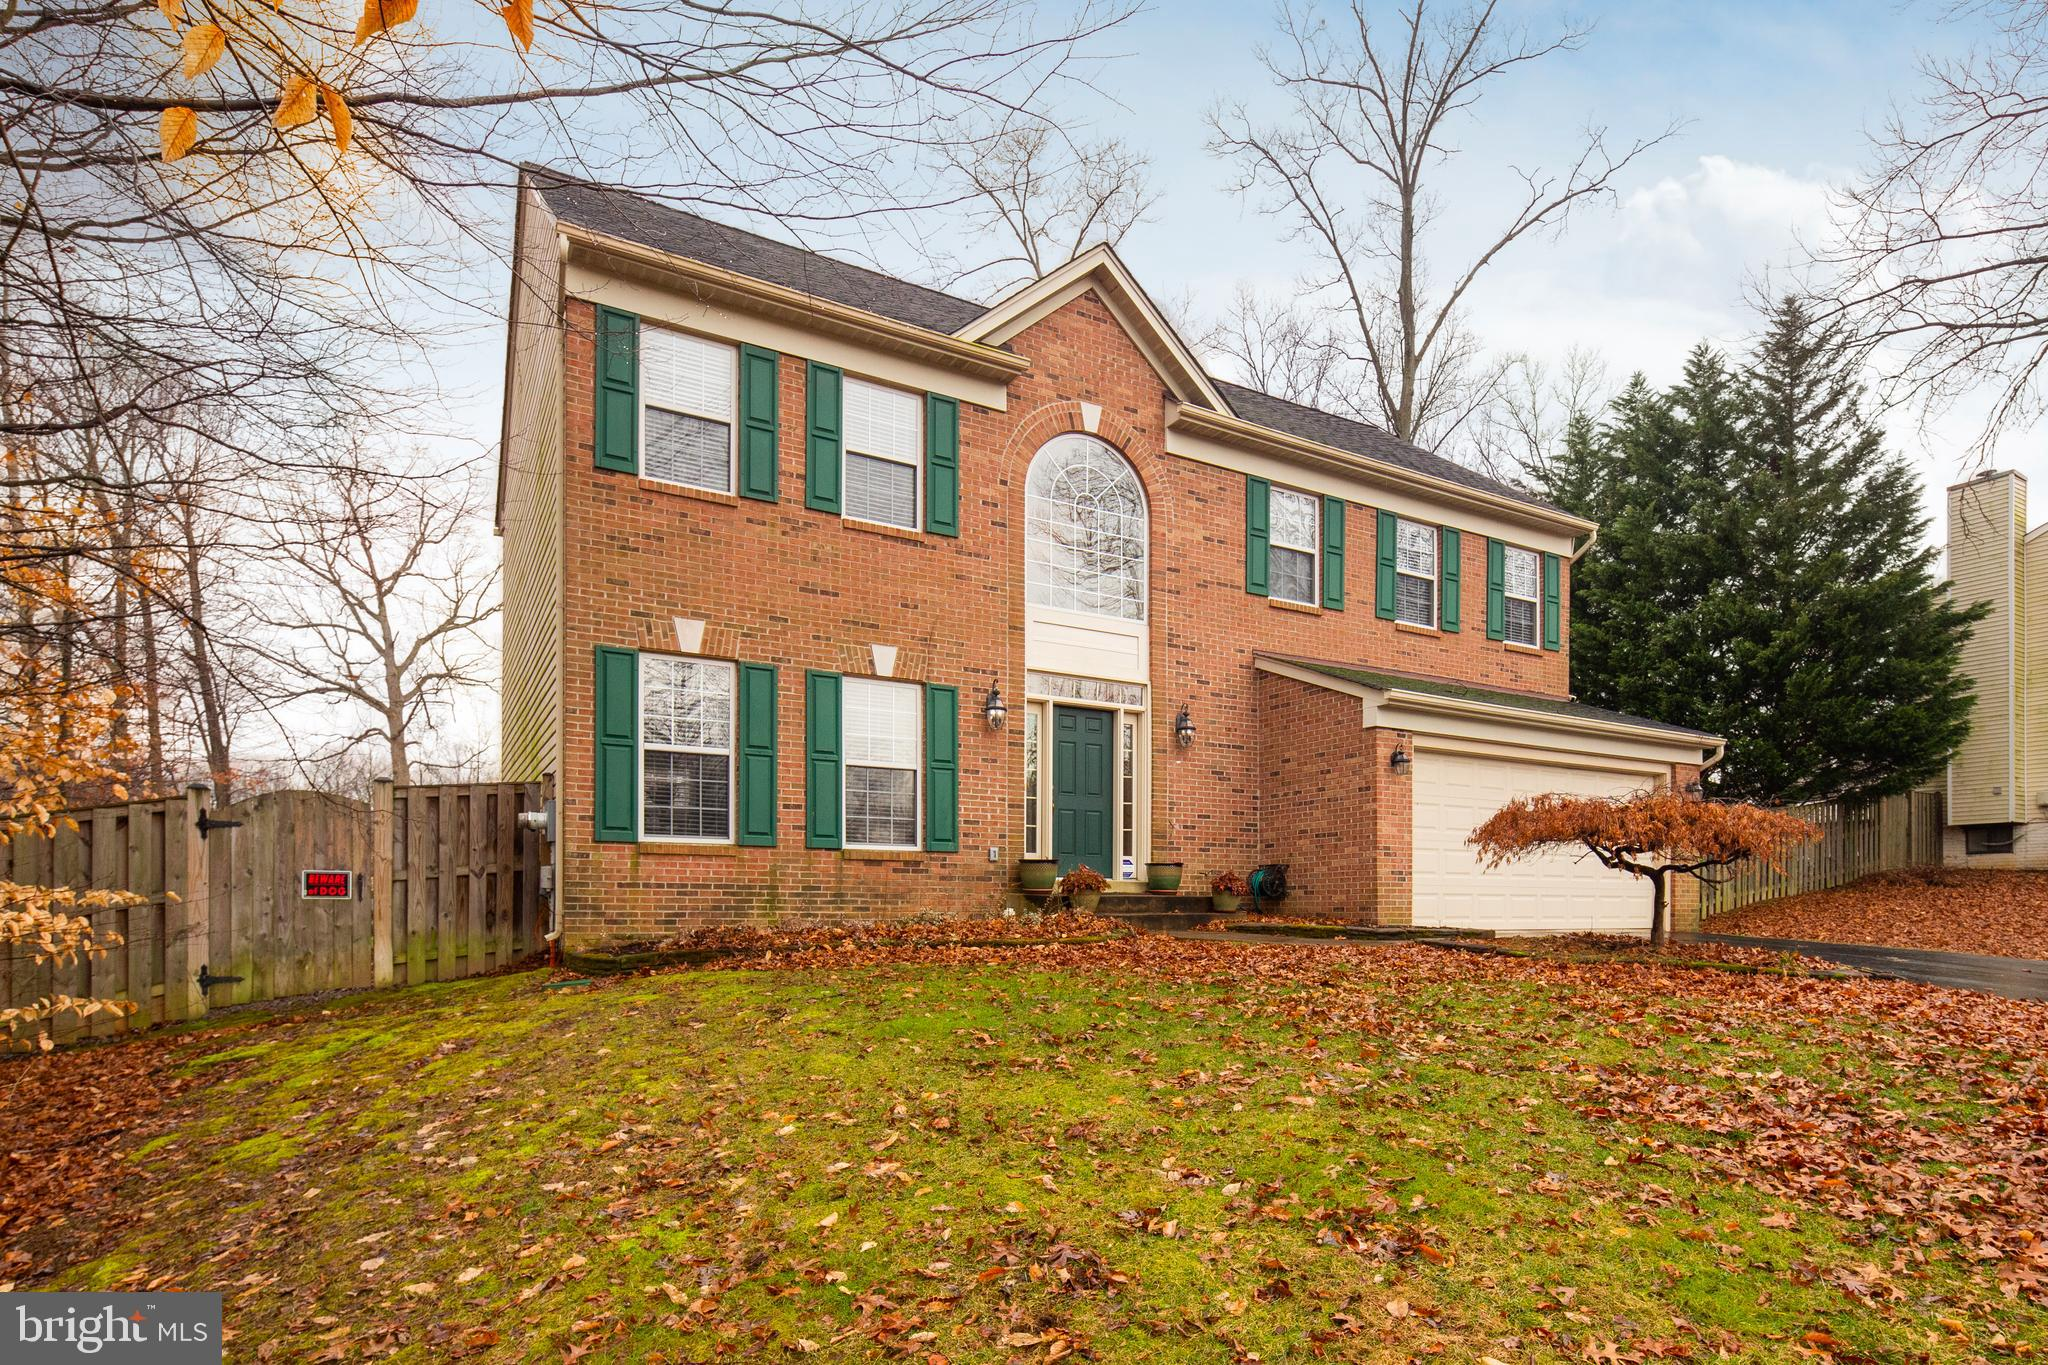 Chapel Acres is the place to be - a quiet street in sought after Springfield location.  Large lush lot ready for play, including private fenced back yard (even a separate run for the pups), can be enjoyed more often when your commute is so convenient.  Just off the Fairfax County Parkway with quick access to I-95, I-495, HOV, Metro, VRE, popular schools, shopping, parks galore and South Run Rec Center.  Everything you need and want in a neighborhood comes with an elegant home, open spaces and oversized deck just waiting for favorite friends and summer beverages.  Leave your shoes and worries in the grand two story foyer and then decide where to spread out, with room for everyone and gleaming wood floors underfoot throughout the main level.  Dream kitchen is at the heart of the home, with granite counters and stainless appliances.  All perfectly open to the family room to still chat with those gathered by the crackling wood fireplace, or for conversations to spill out onto the deck.  There are still an elegant dining room with crown molding and wainscoting, and formal living room.  Retreat to the upstairs bedrooms, all with plush carpet and ceiling fans cooling overhead. The Master suite is a prized retreat including dual closets, and spa bath with a corner soaking tub.  Finished basement is ready for exercise, game day or movie night, with the bonus convenience of a stylish room for guests and third full bath.